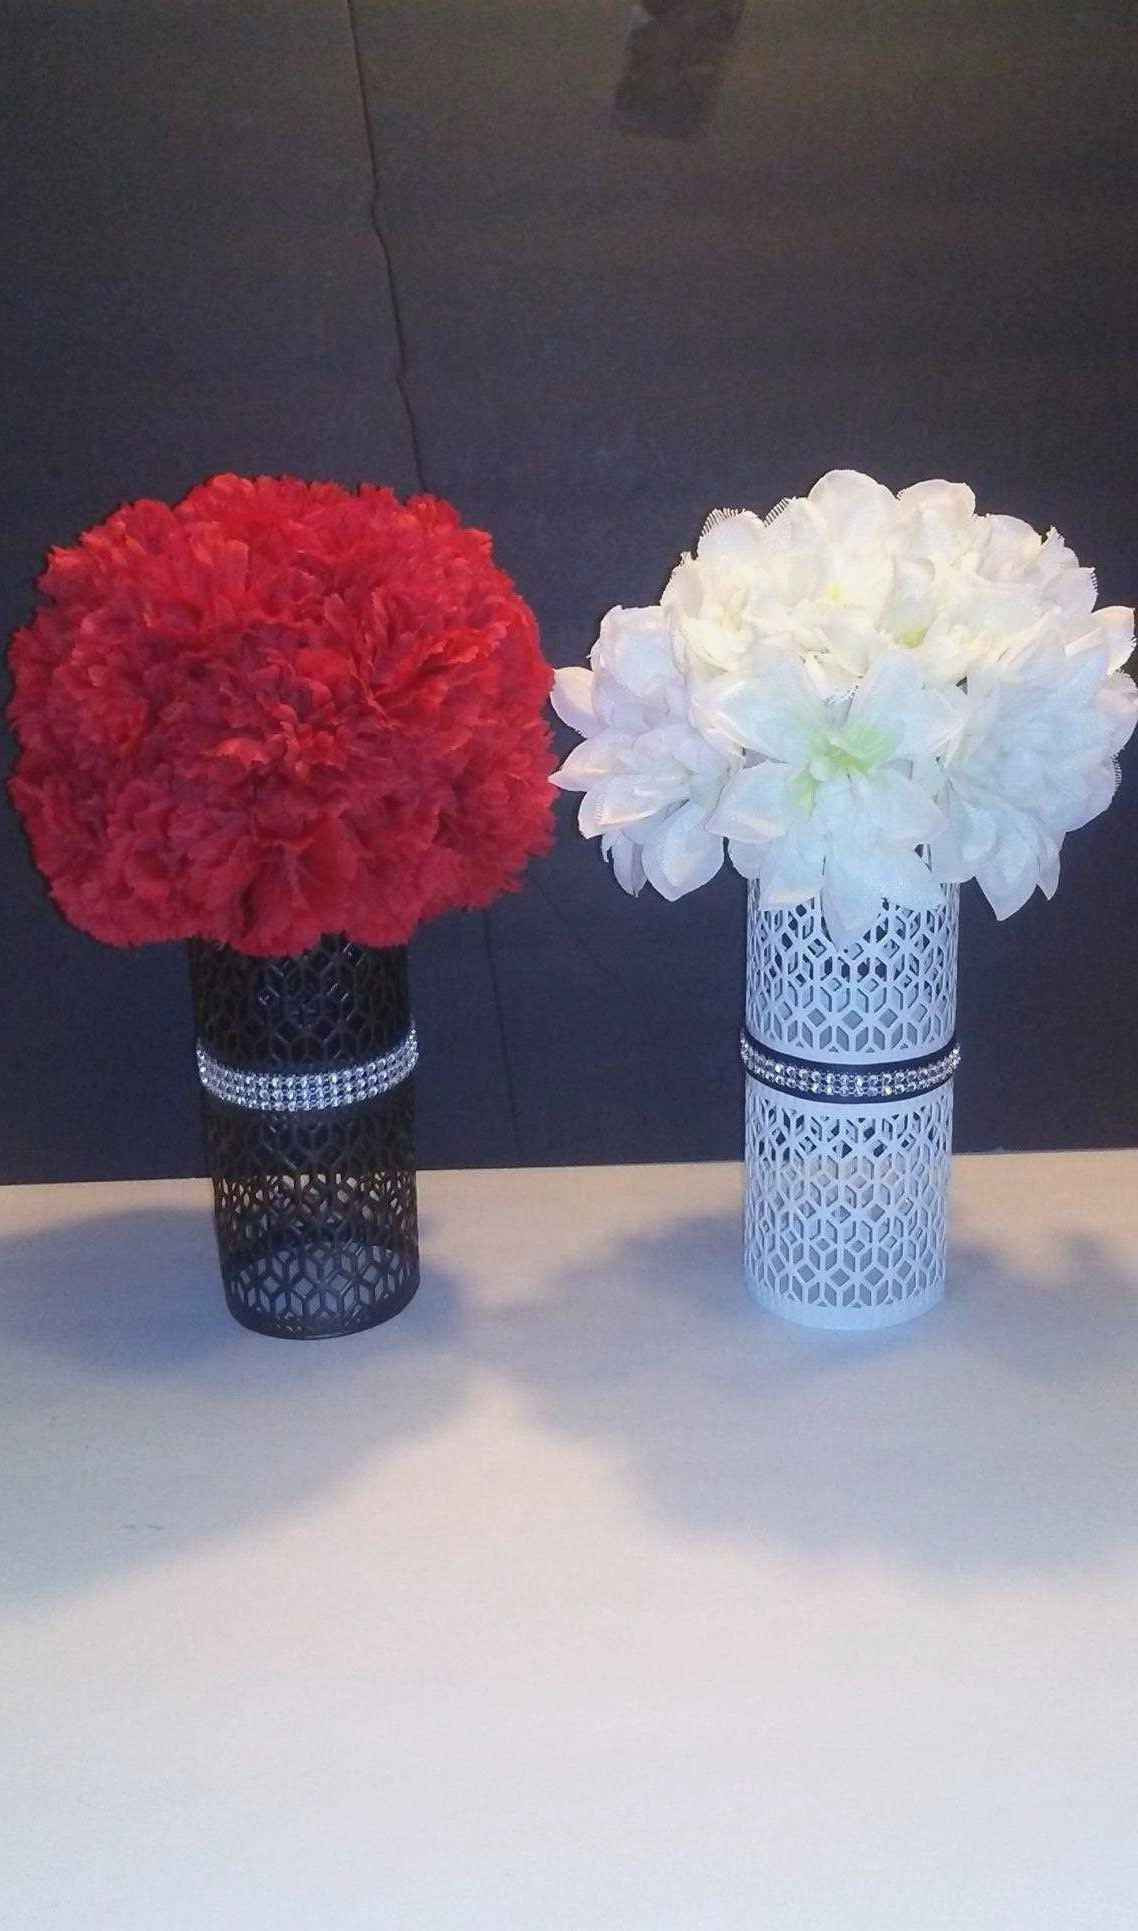 Roses In Square Vase Of Fall Flowers for Wedding Beautiful Dollar Tree Wedding Decorations Intended for Fall Flowers for Wedding Beautiful Dollar Tree Wedding Decorations Awesome H Vases Dollar Vase I 0d